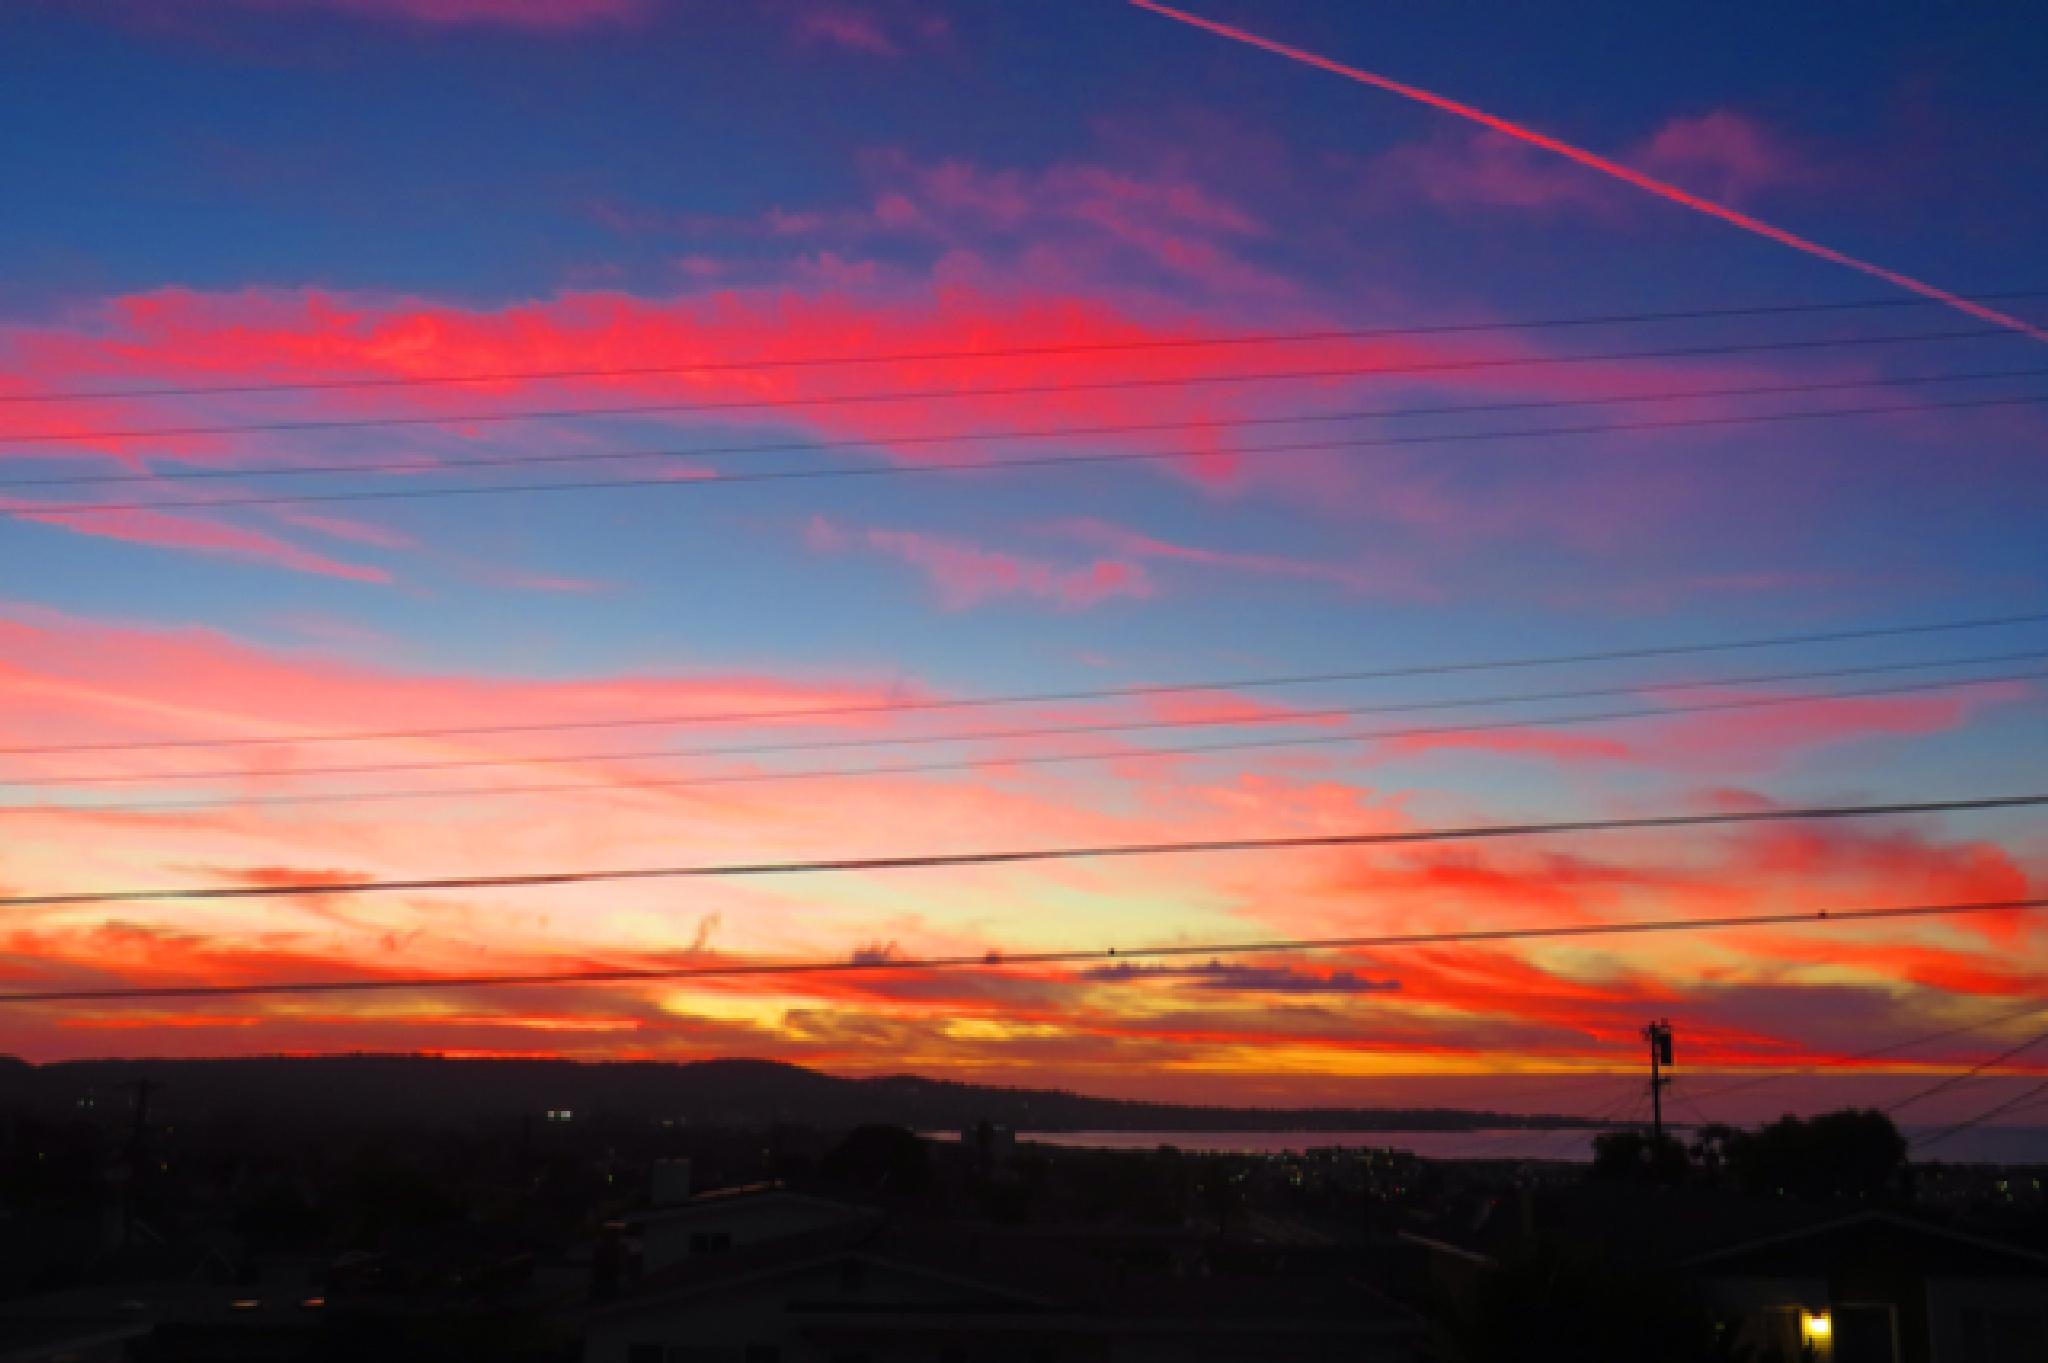 IMG_1941 by soulofcentralcoast